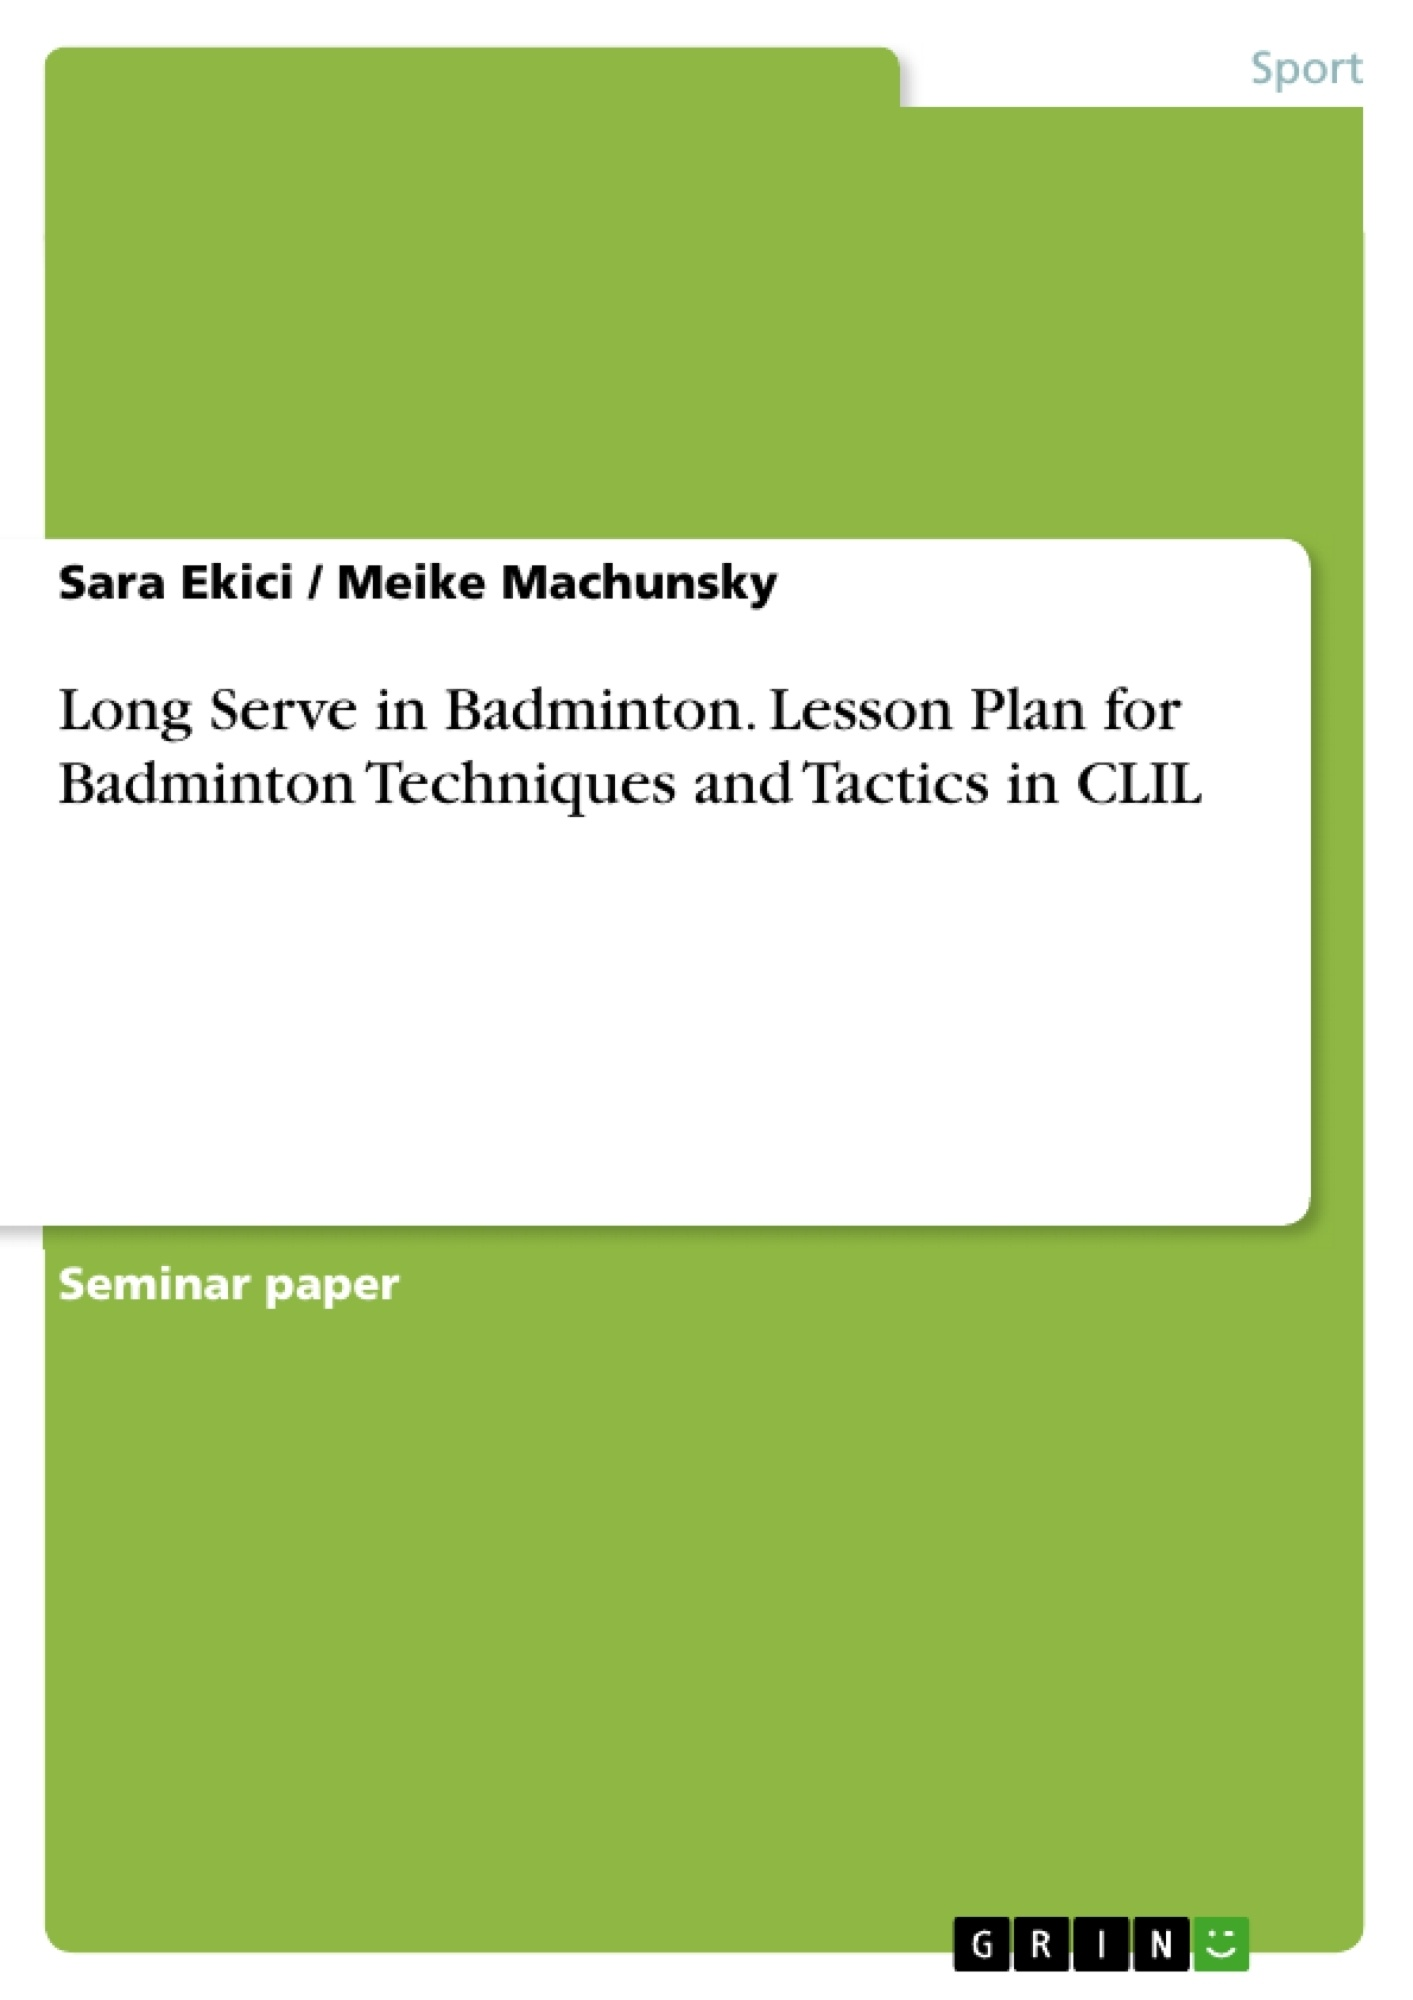 term paper in badminton